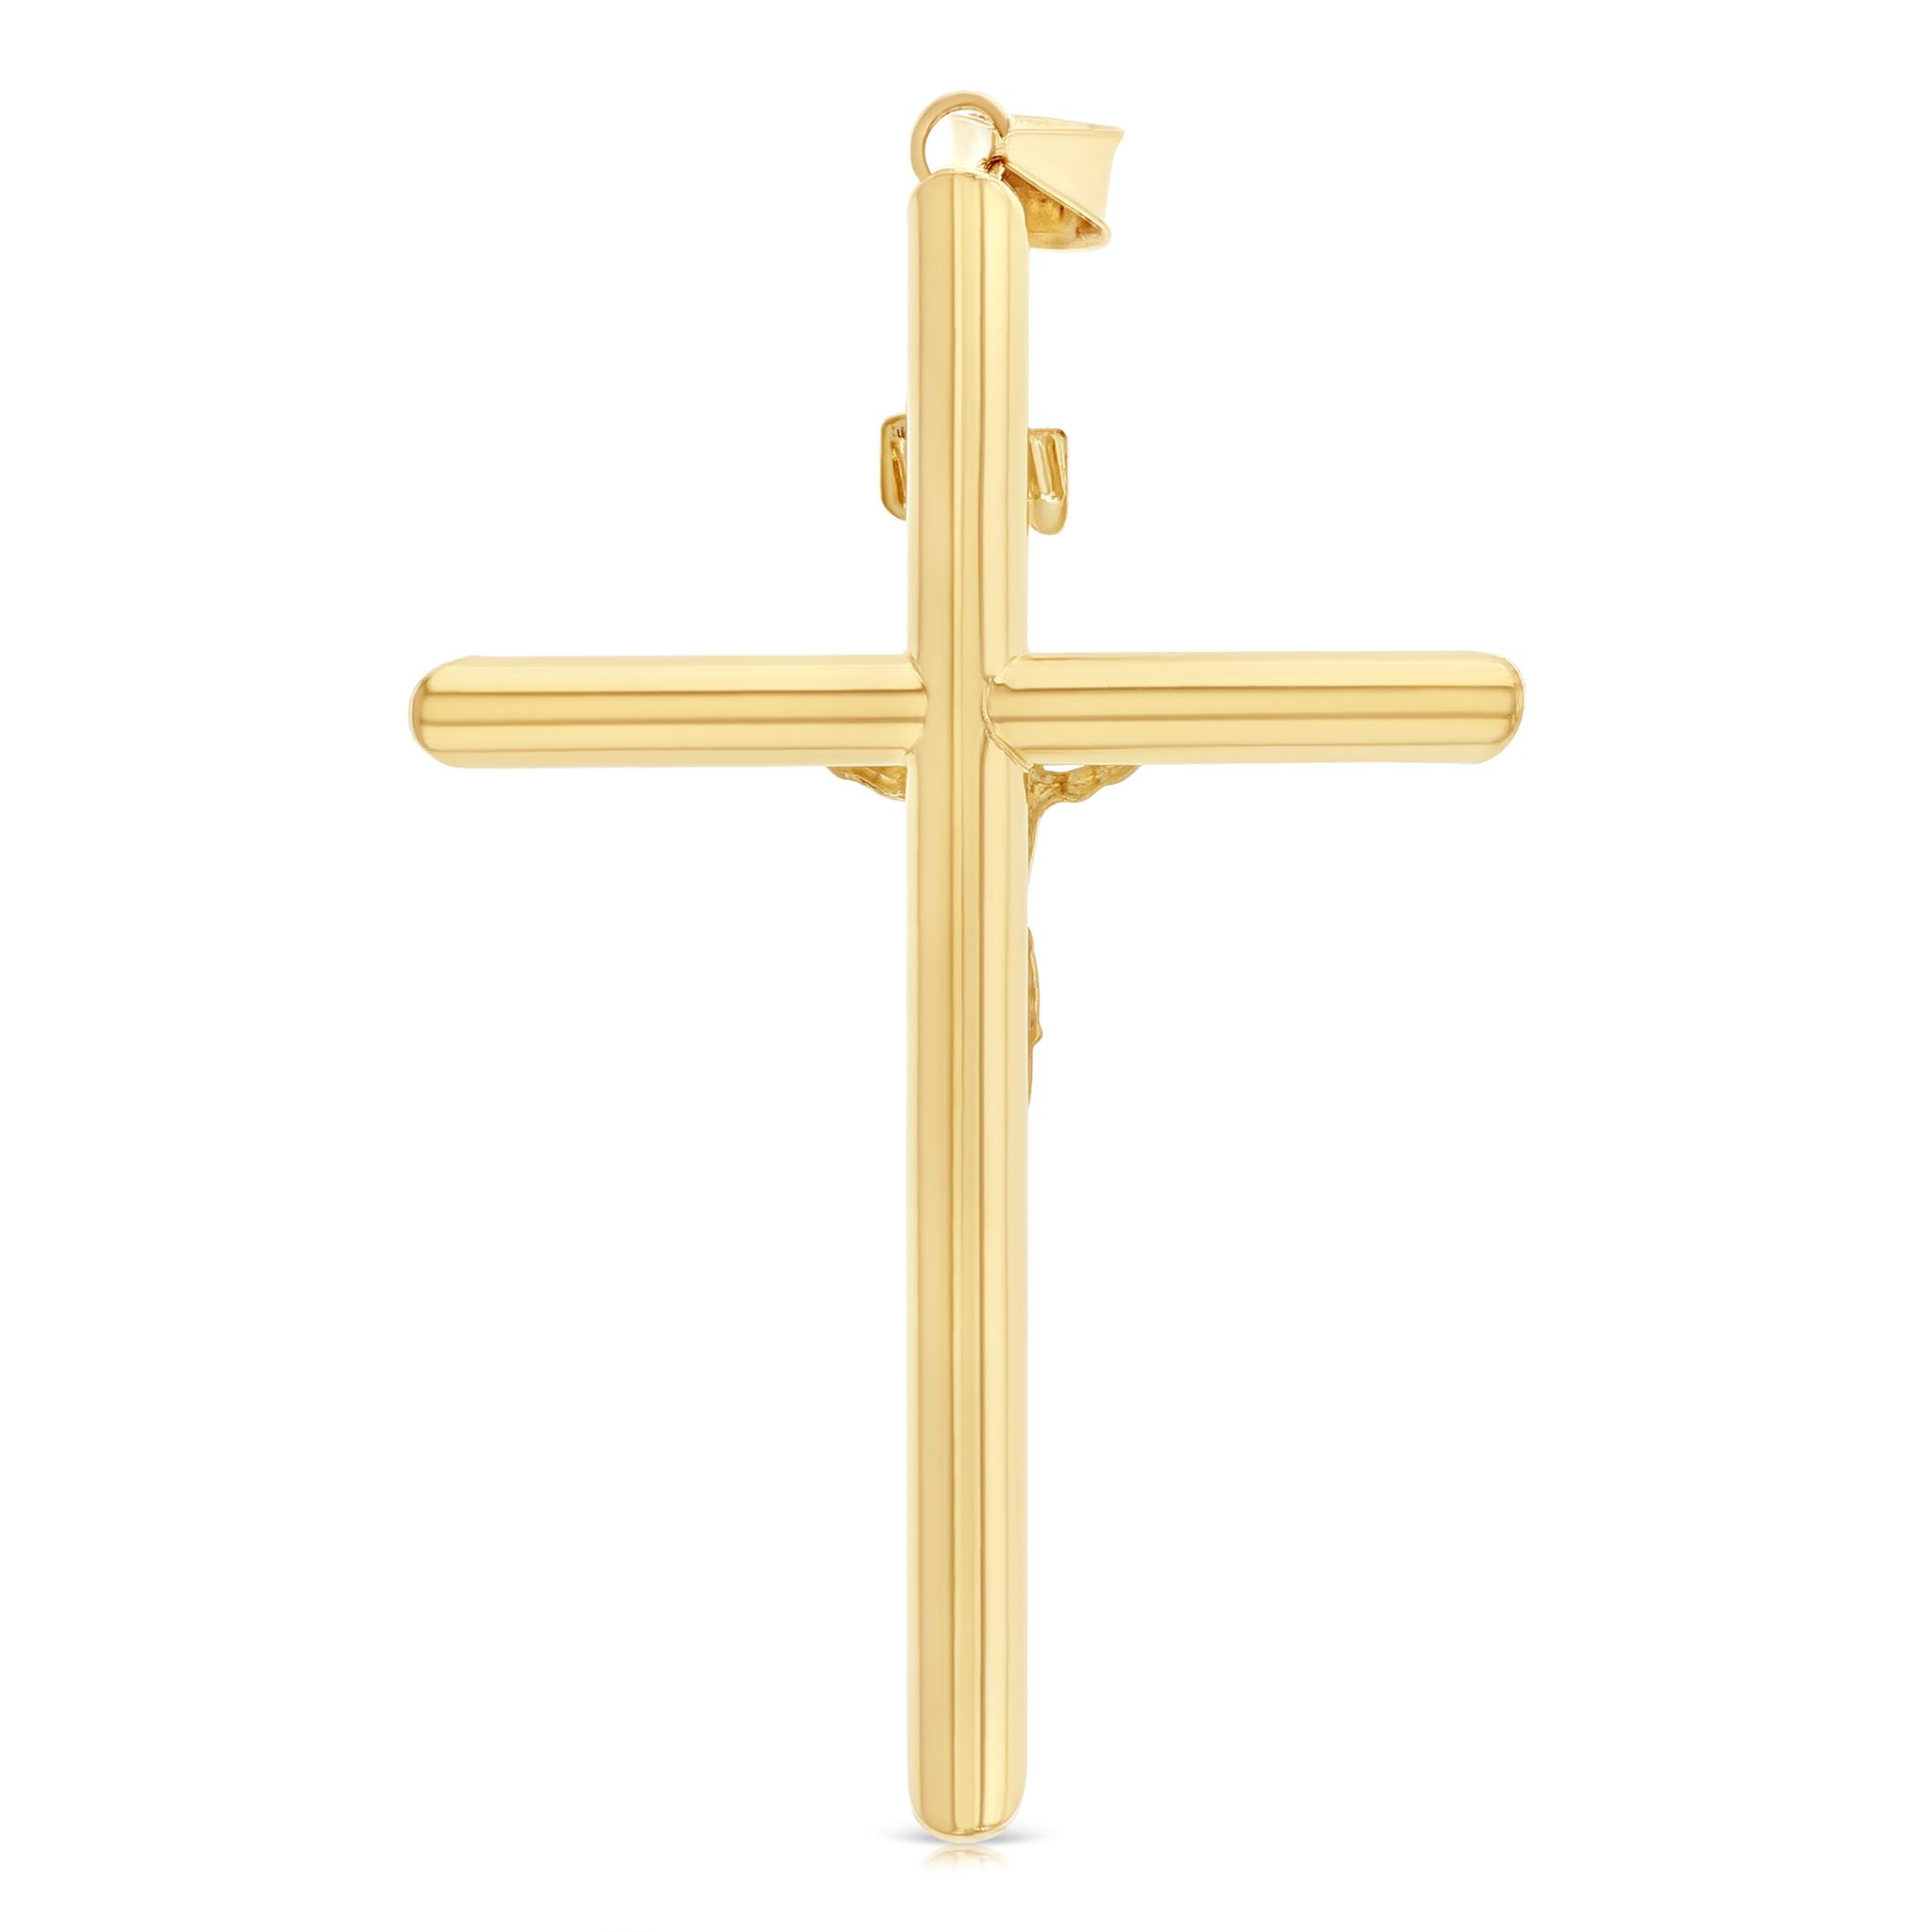 Ioka 14K Two Tone Gold Cross Religious Charm Pendant For Necklace or Chain